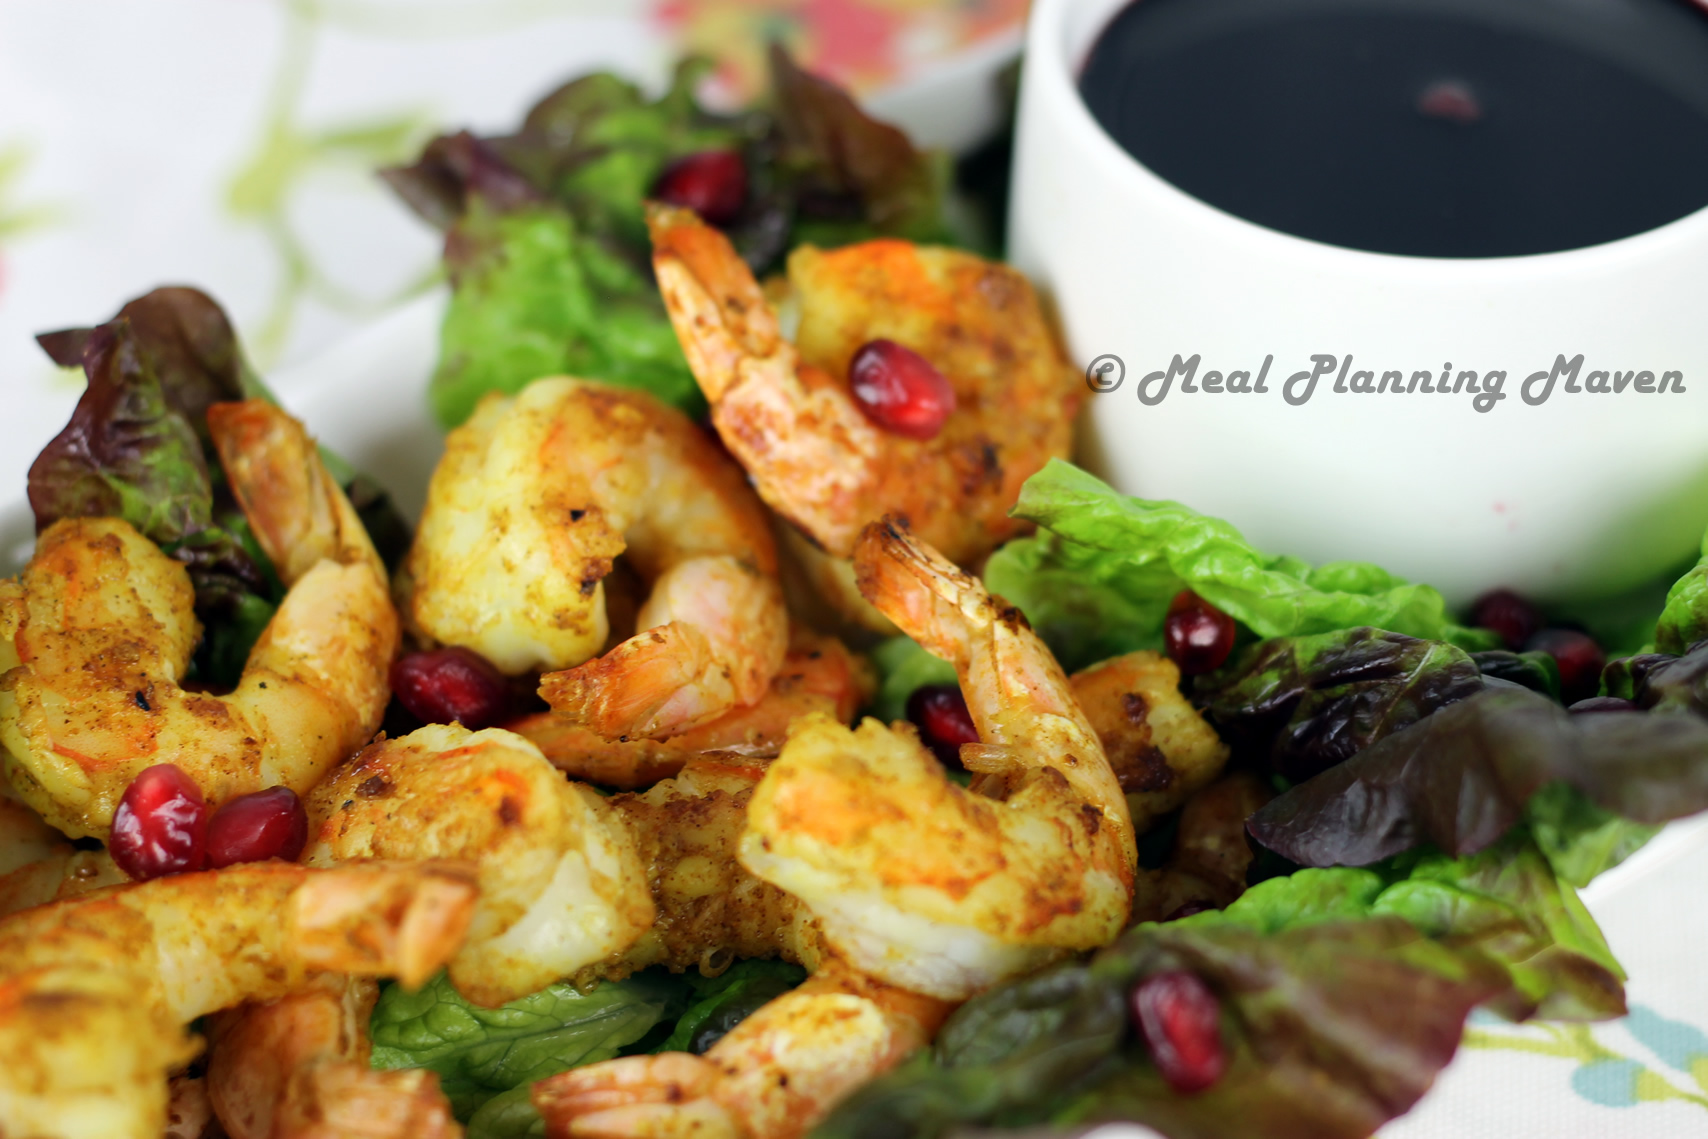 Grilled Moroccan Shrimp with Cherry-Pom Dipping Sauce